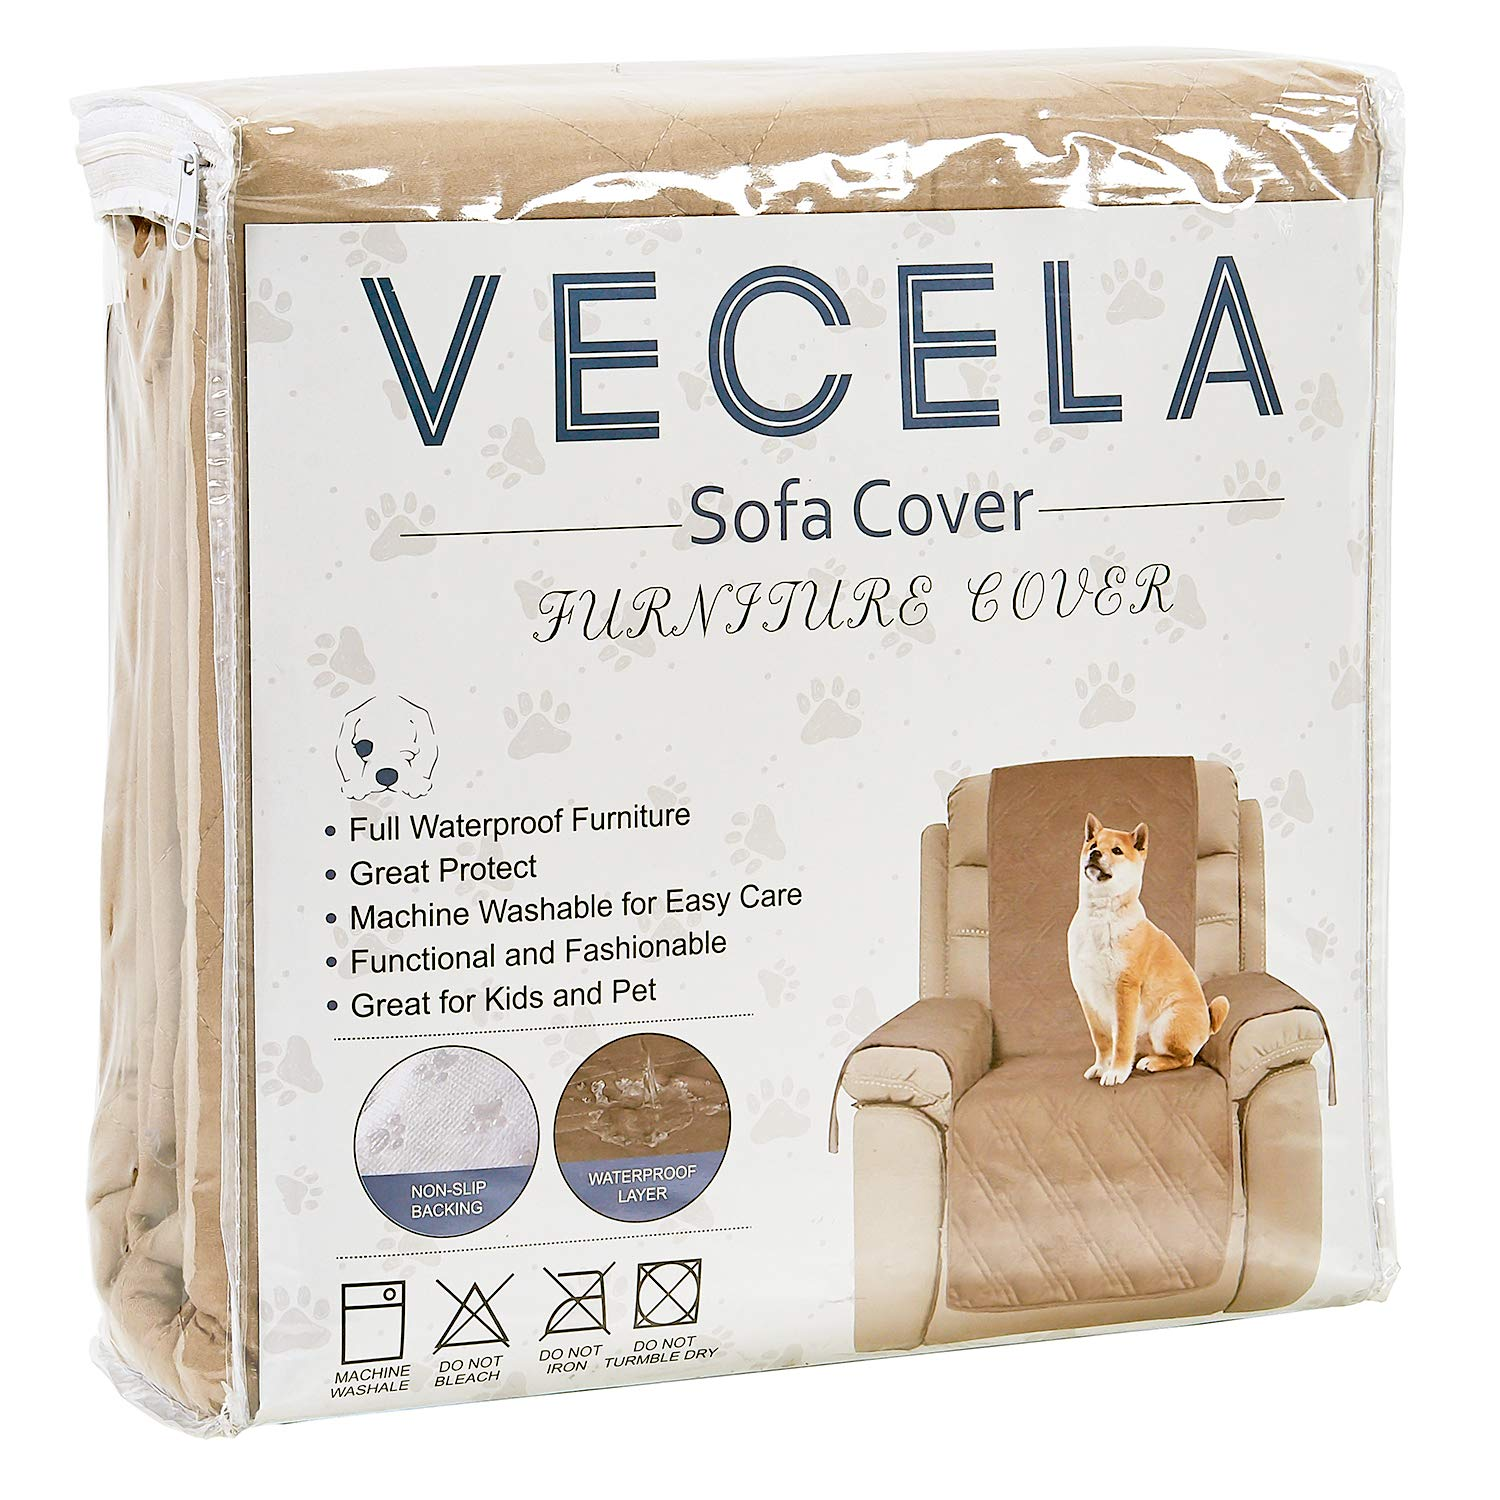 Great for Dogs VECELA Pet Sofa Cover Loveseat 100/% Waterproof Furniture Protector Cover Slipcovers Stay in Place Non-Slip Stain Resistant Pets and Kids